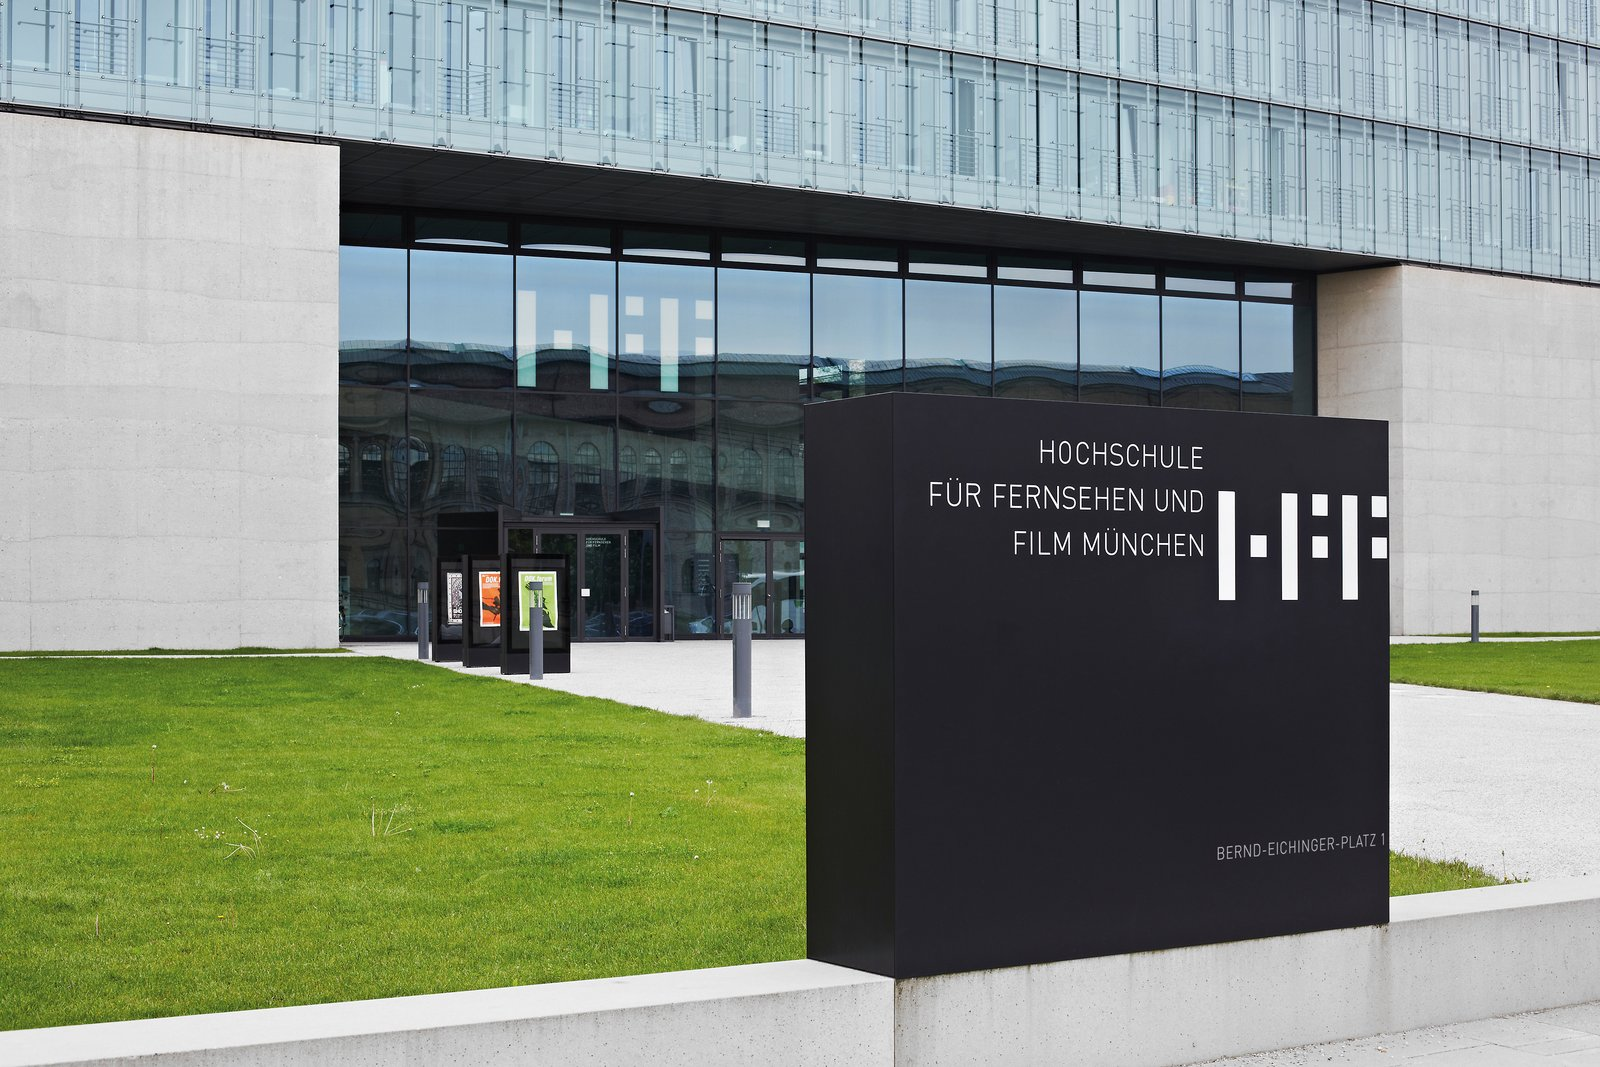 University of Television and Film Munich: To ensure easy orientation, the university's logo and important information were applied, almost like projections, directly onto the concrete and glass facades for high visibility.  Way-Finding Systems